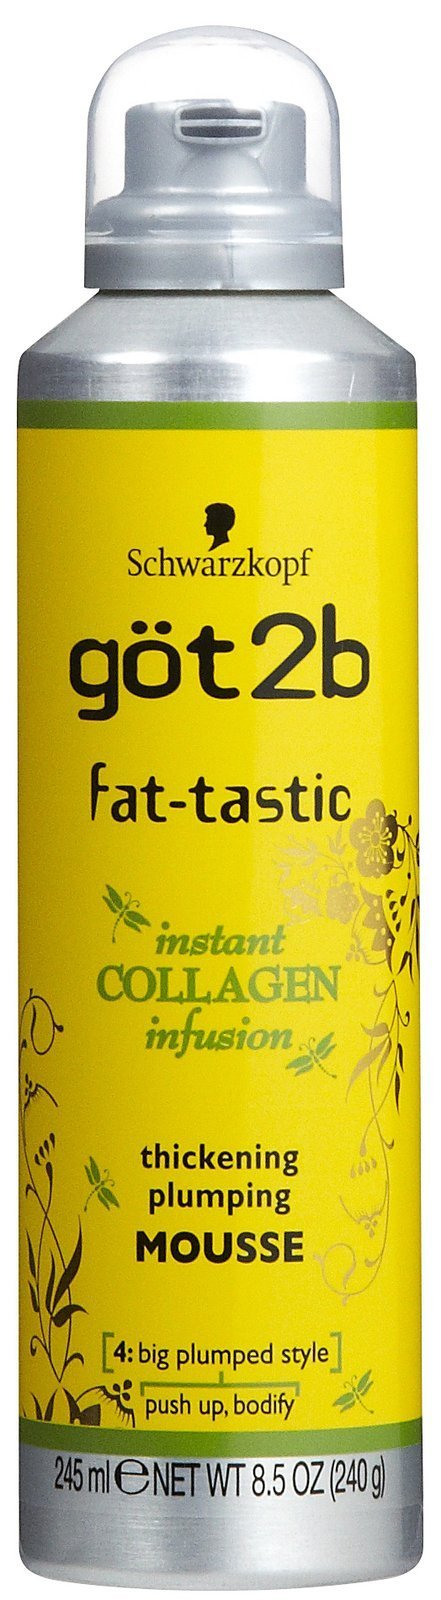 got2b fat-tastic Instant Collagen Infusion Mousse, 8.5 Ounces